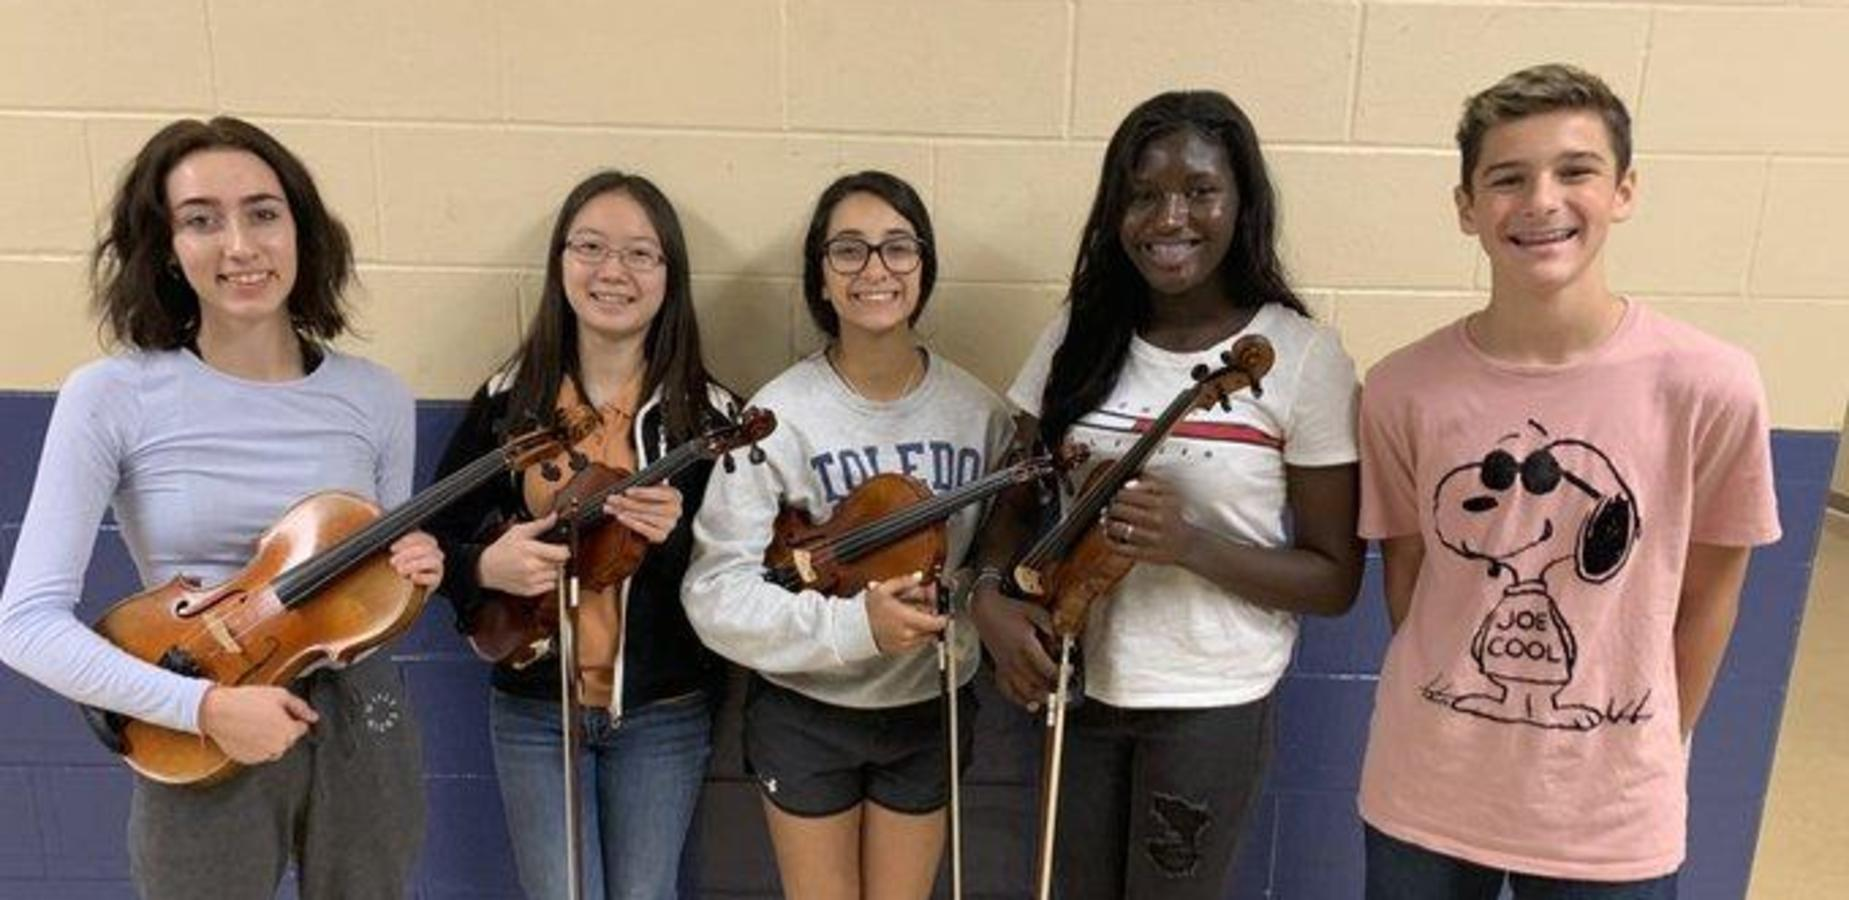 This is a photo of students in the Southwest Region Orchestra representing Fairfield High School. They are holding their violins and violas.